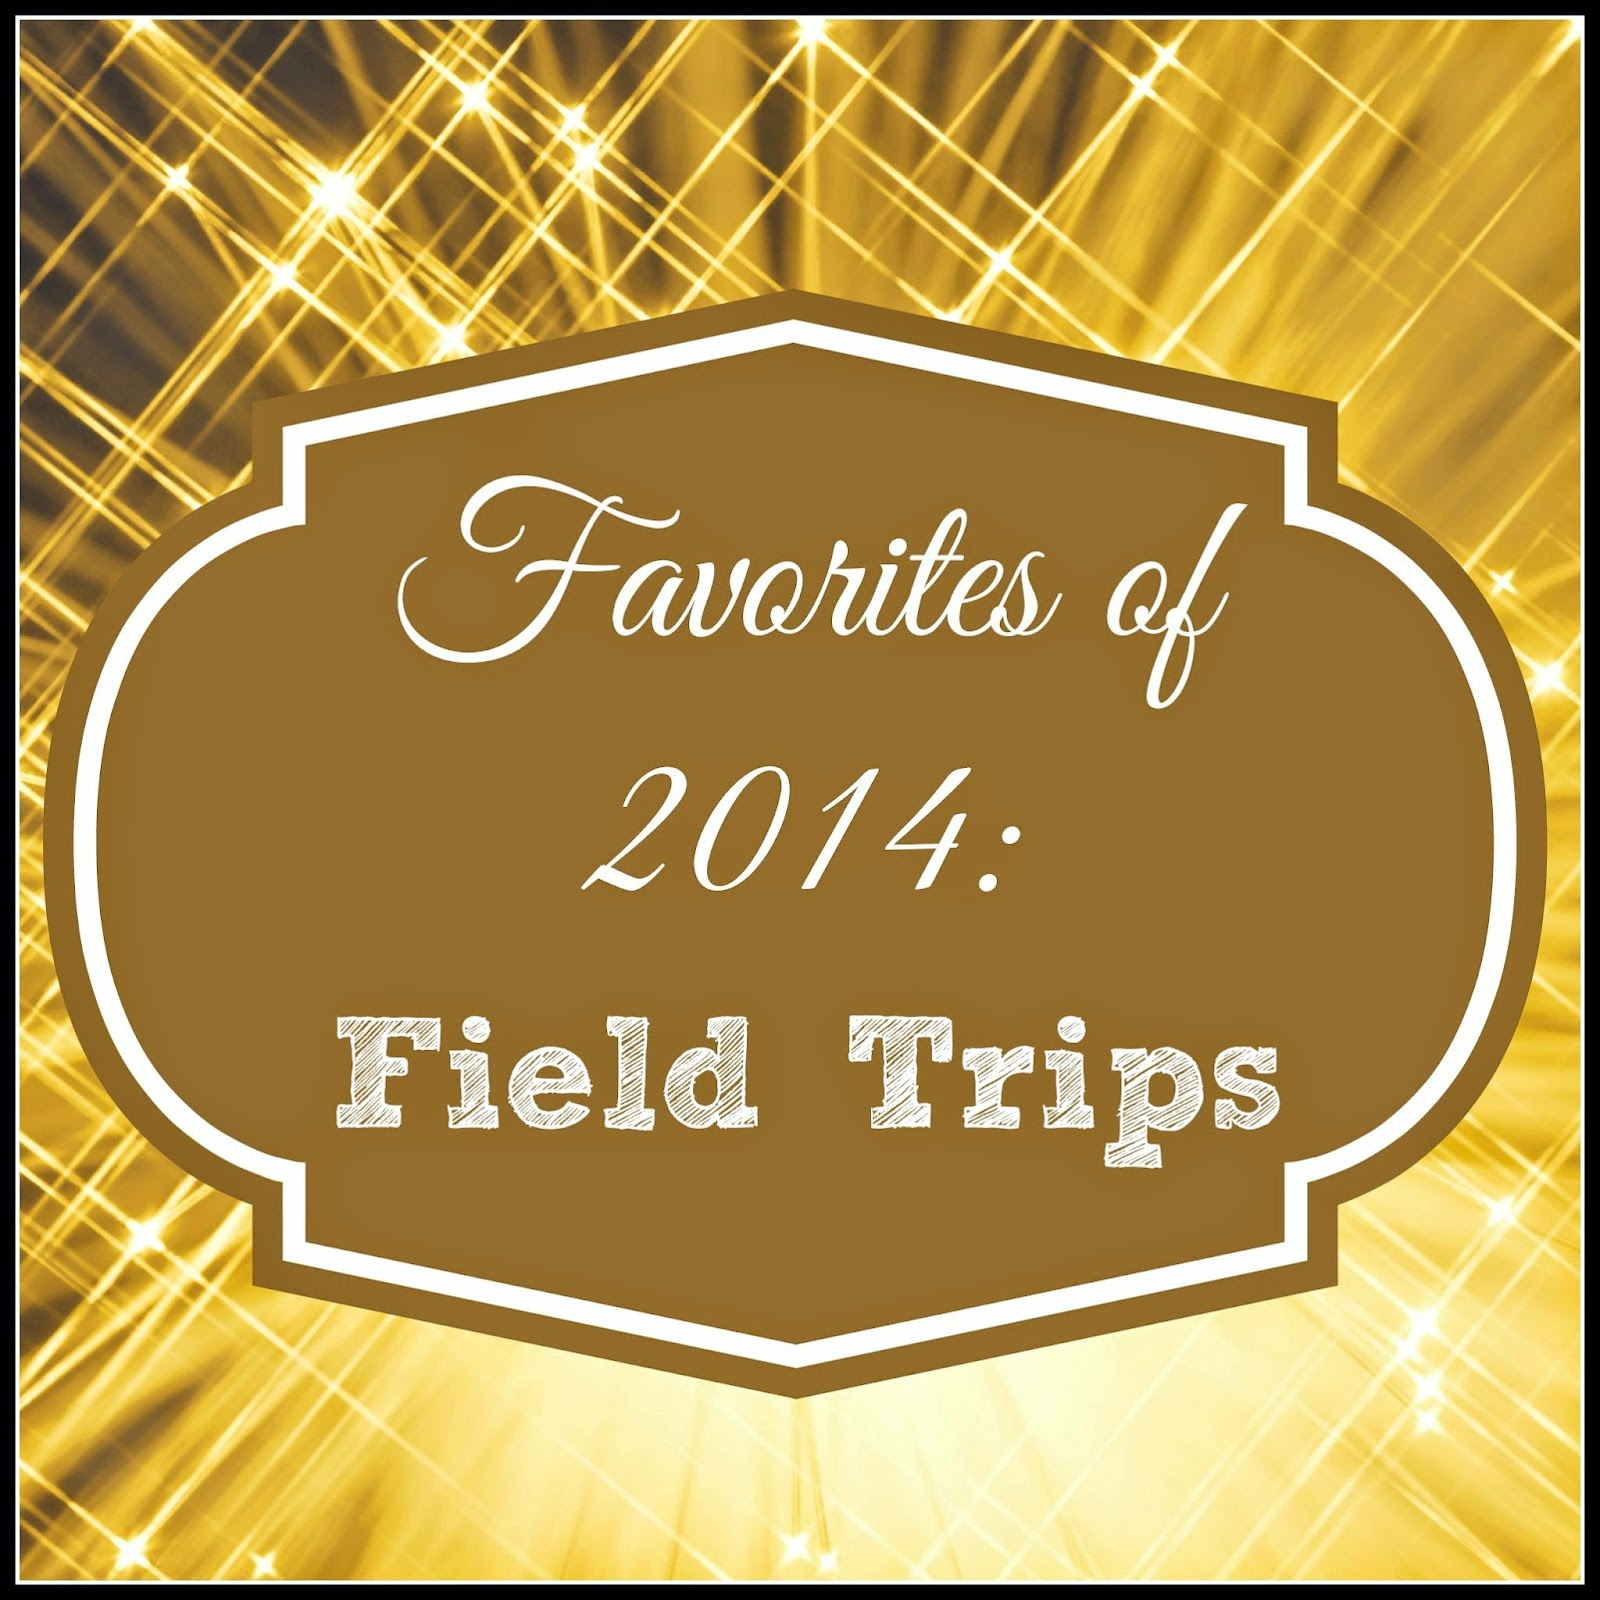 Favorite #FieldTrips of 2014